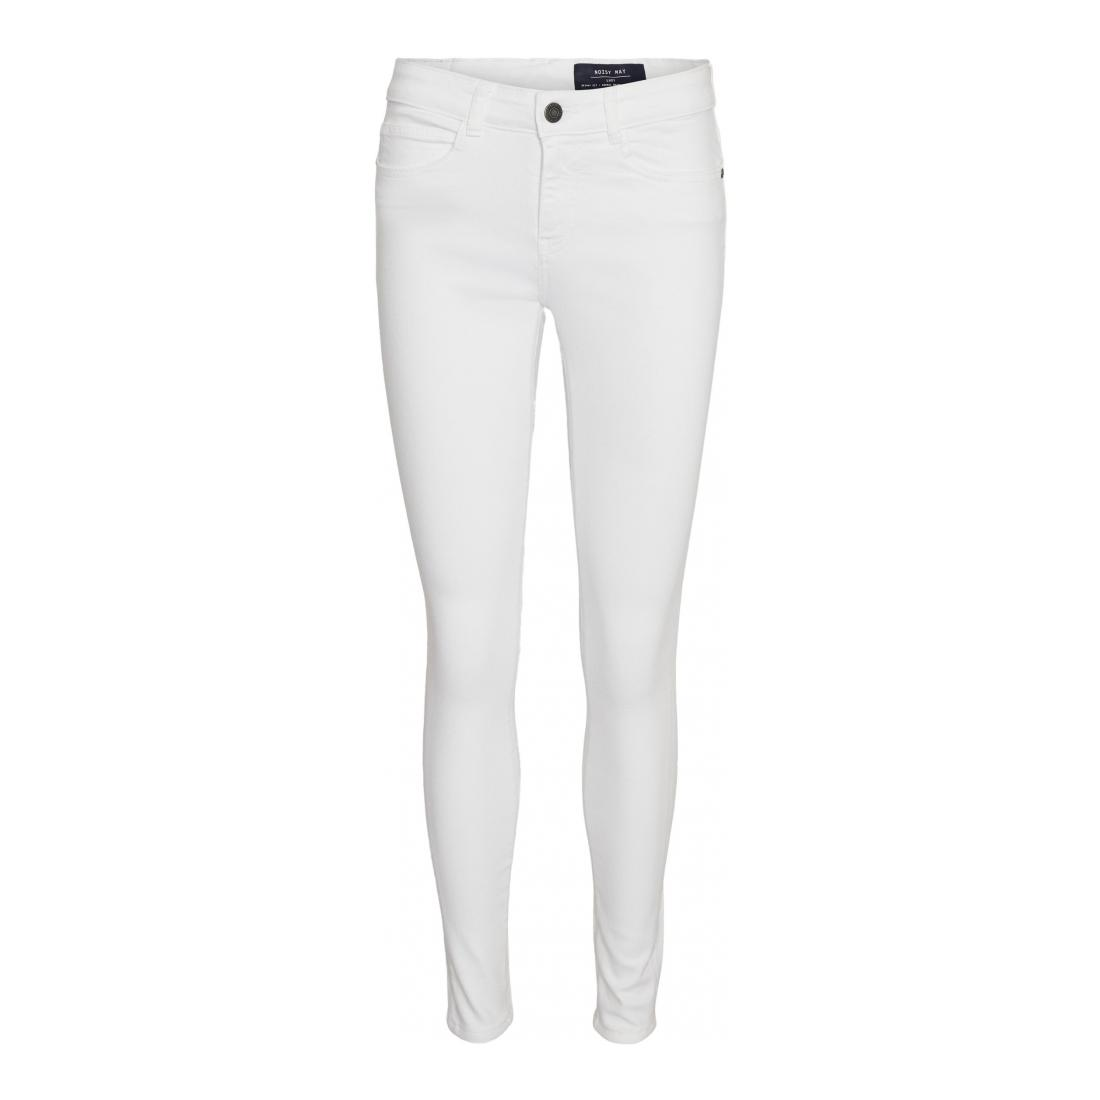 Noisy May Jeans Damen NMLUCY NW JEANS AZ140WH B